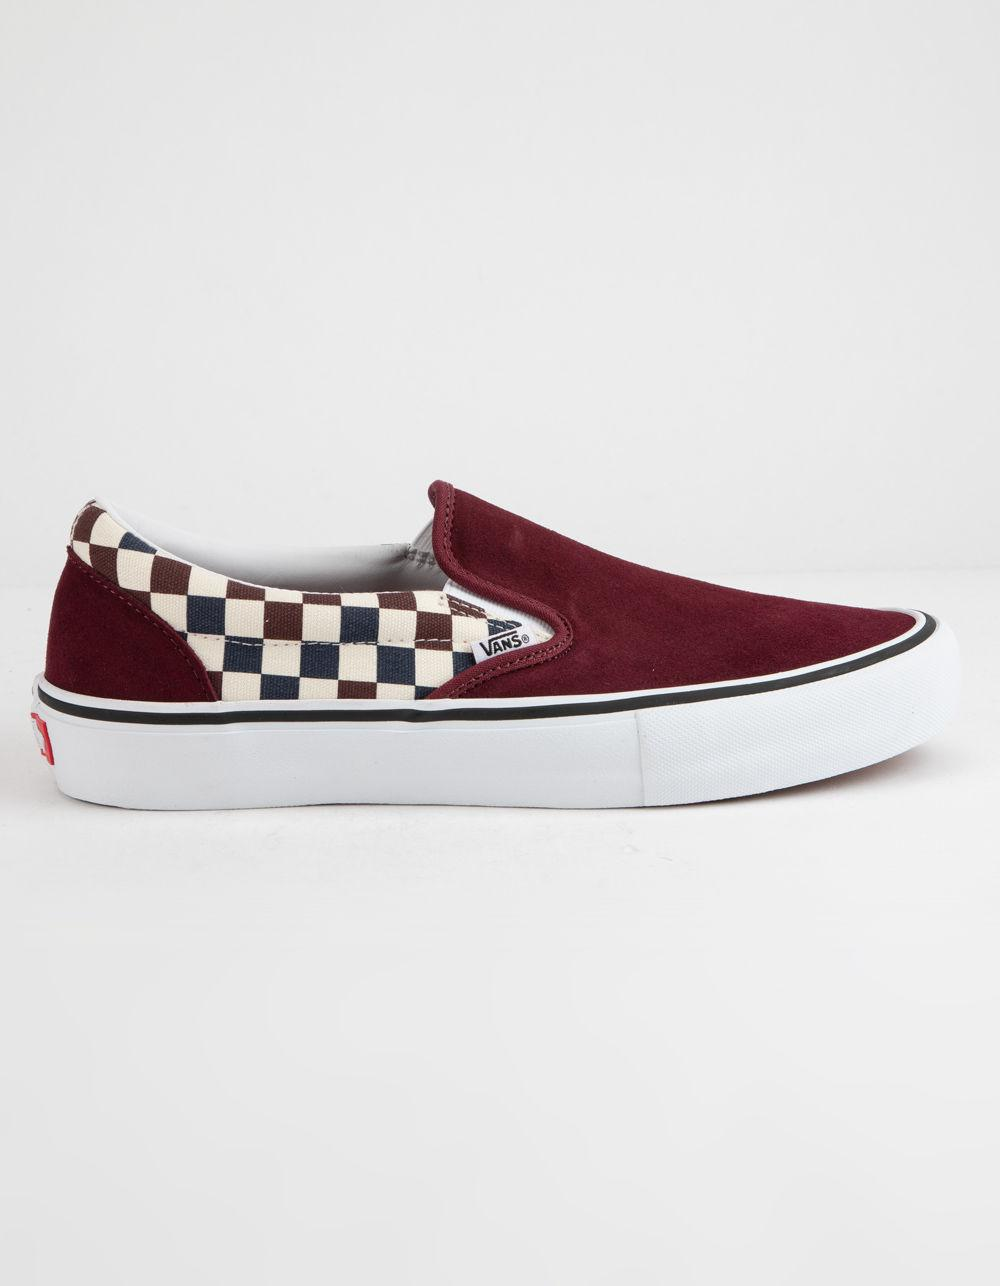 Vans - Red Checkerboard Slip-on Pro Port Royal Royal Shoes - Lyst. View  fullscreen 5c9cf5ed0